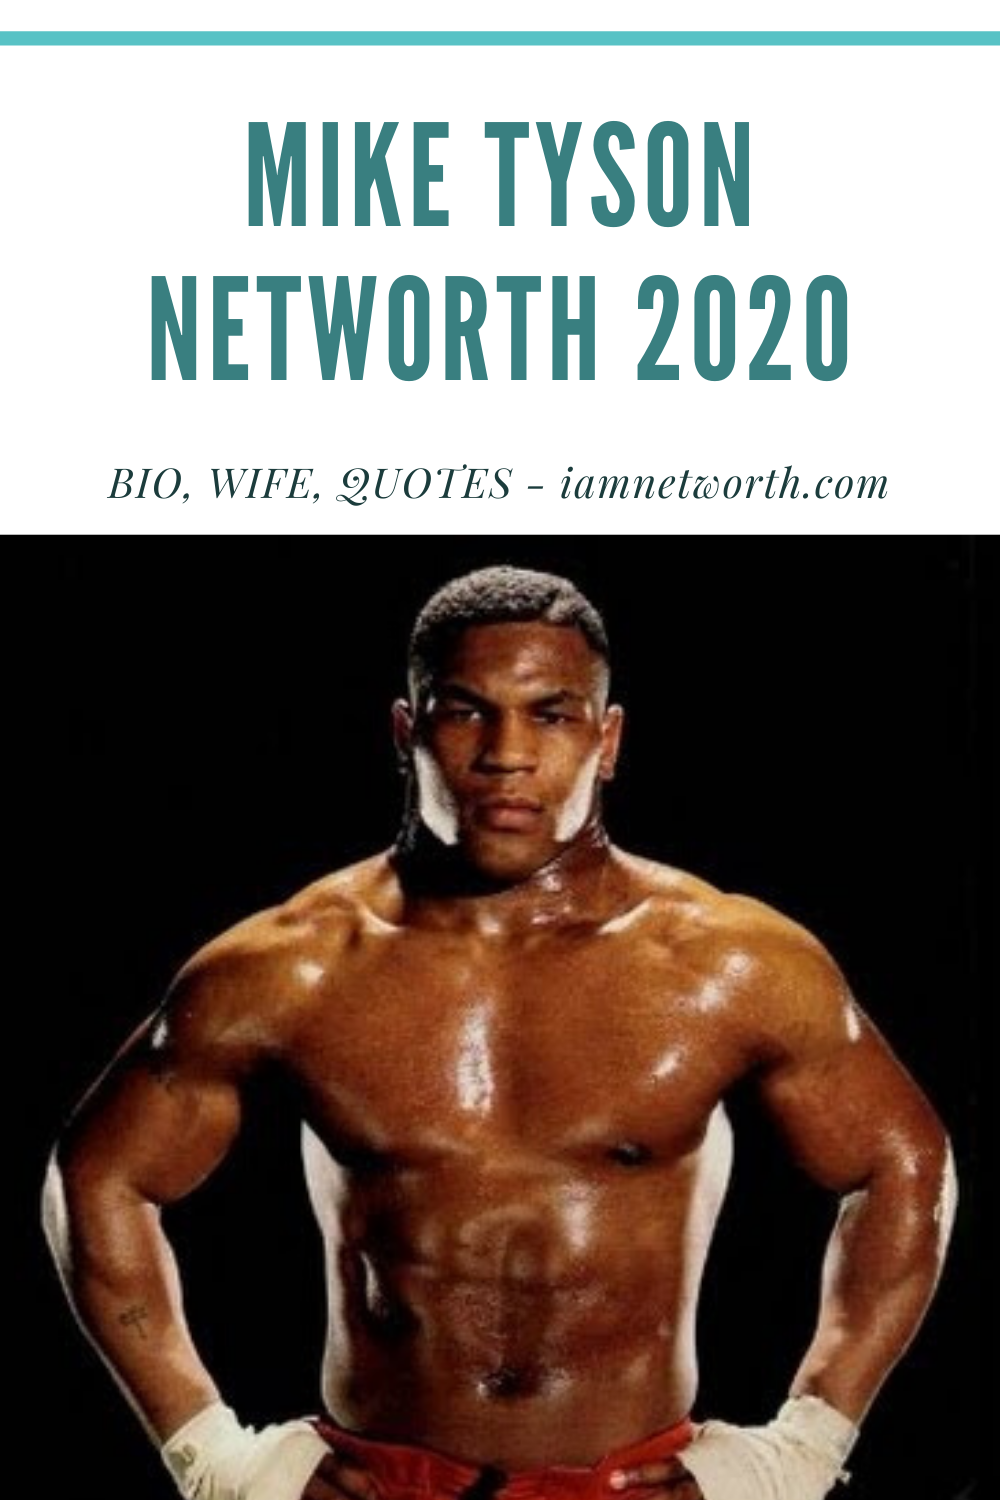 Mike Tyson Net Worth 2020 Bio Wife Quotes In 2020 Mike Tyson Net Worth Tyson